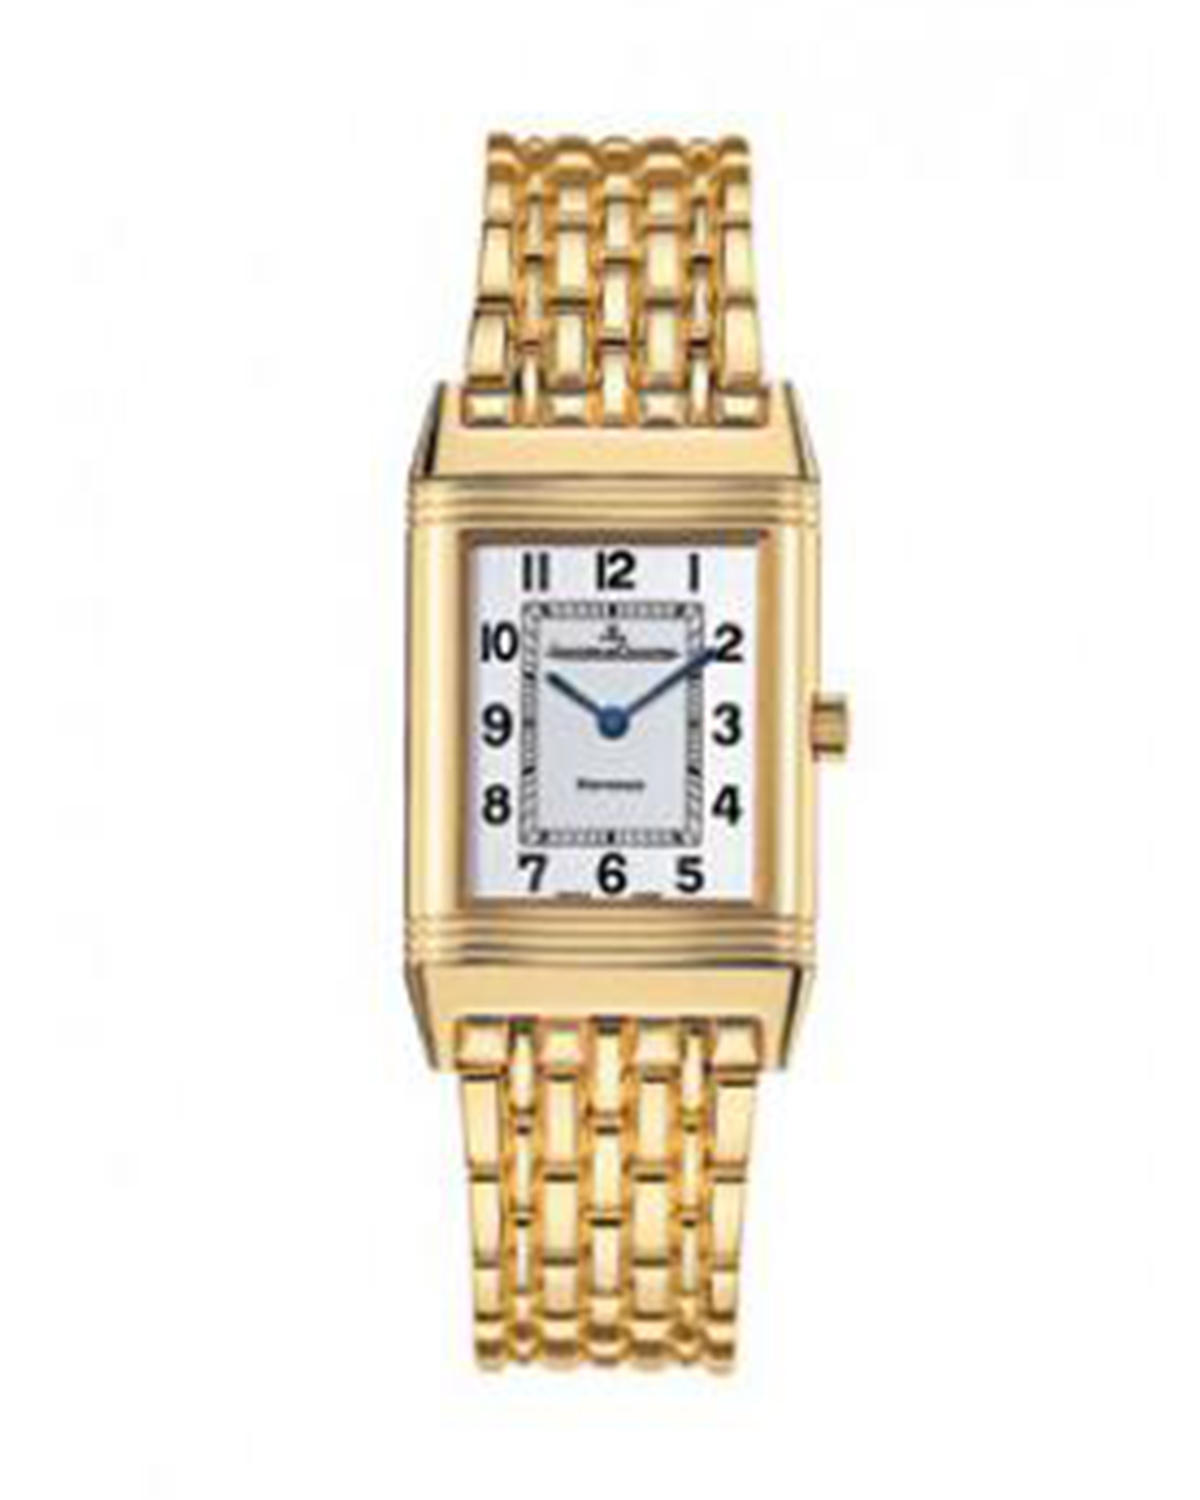 Jaeger Le-Coultre 积家 Reverso Classique 18K黄金 石英男士腕表 2511110